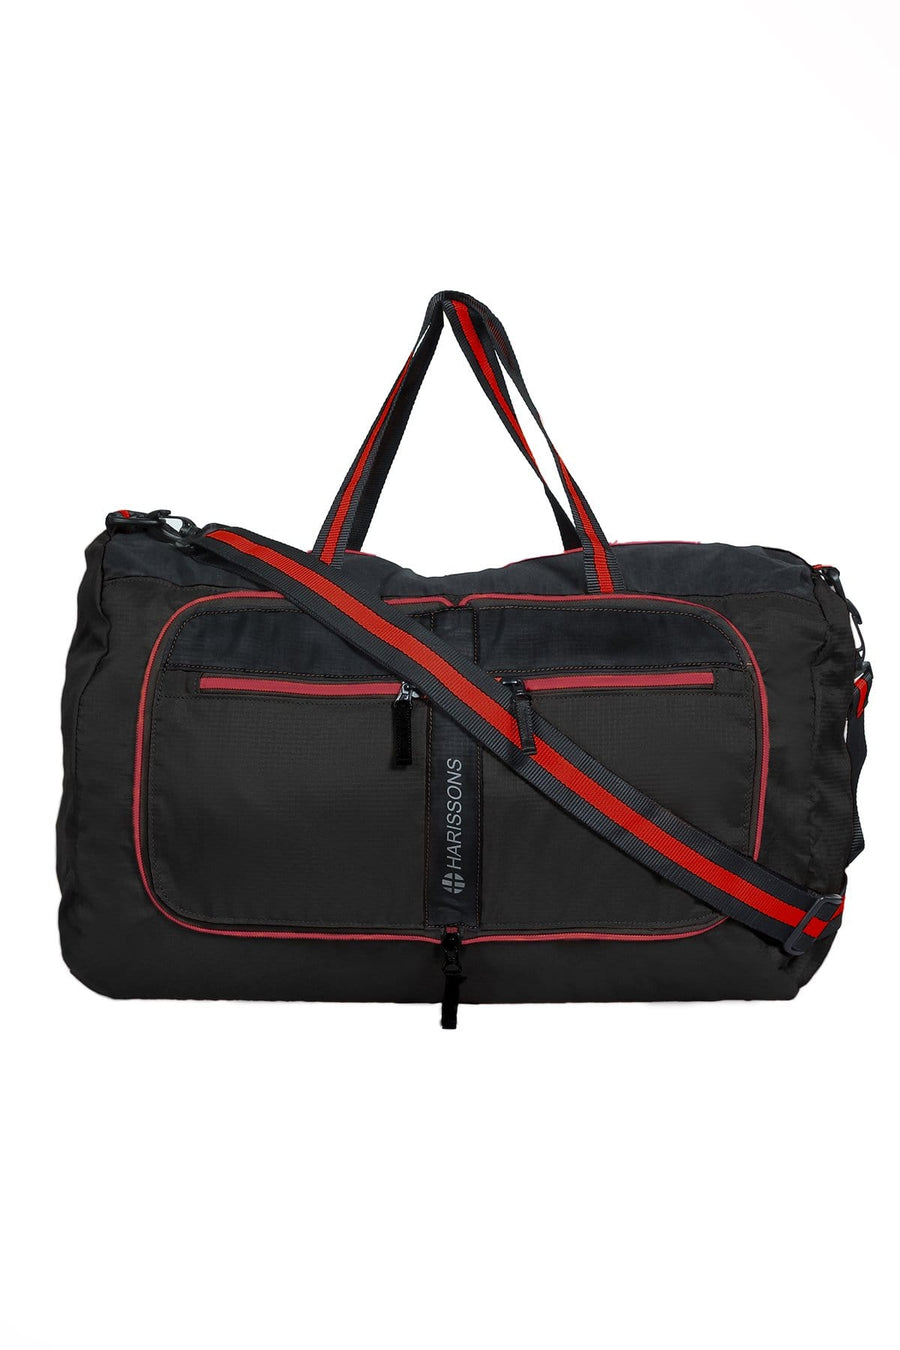 Dolphin 42L Foldable Travel Duffel - Ideal for Shopping Holidays